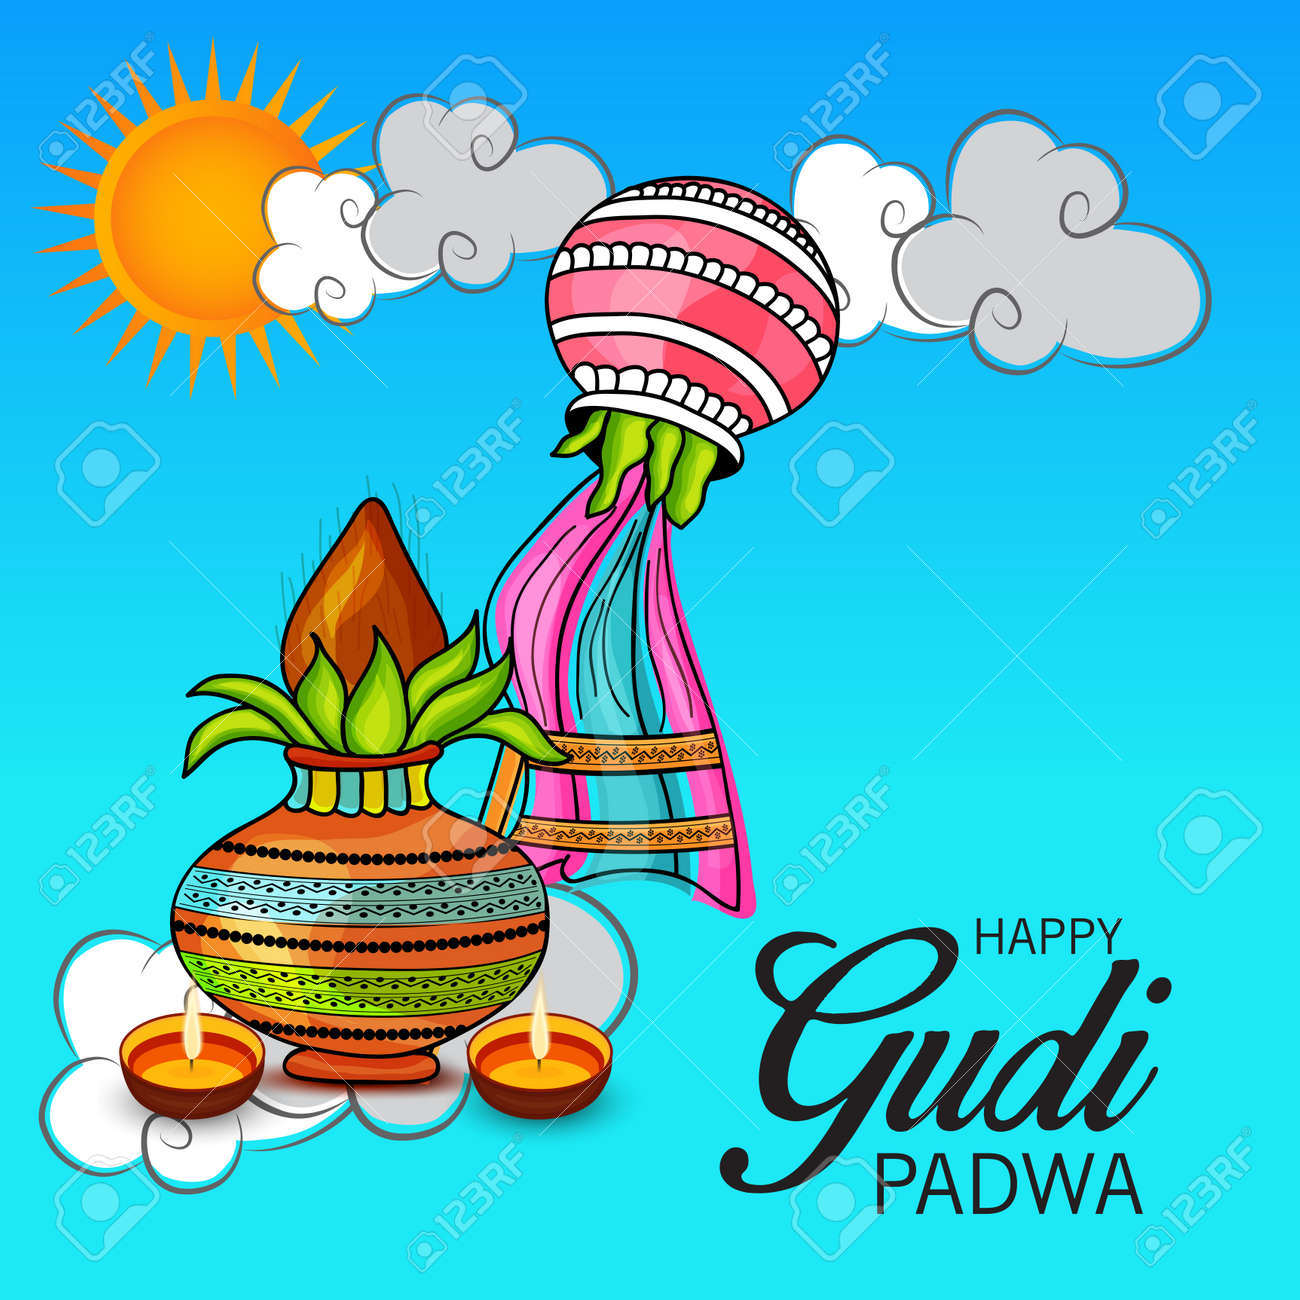 Happy gudi padwa greetings with colorful festive elements and happy gudi padwa greetings with colorful festive elements and sun and clouds illustration stock vector m4hsunfo